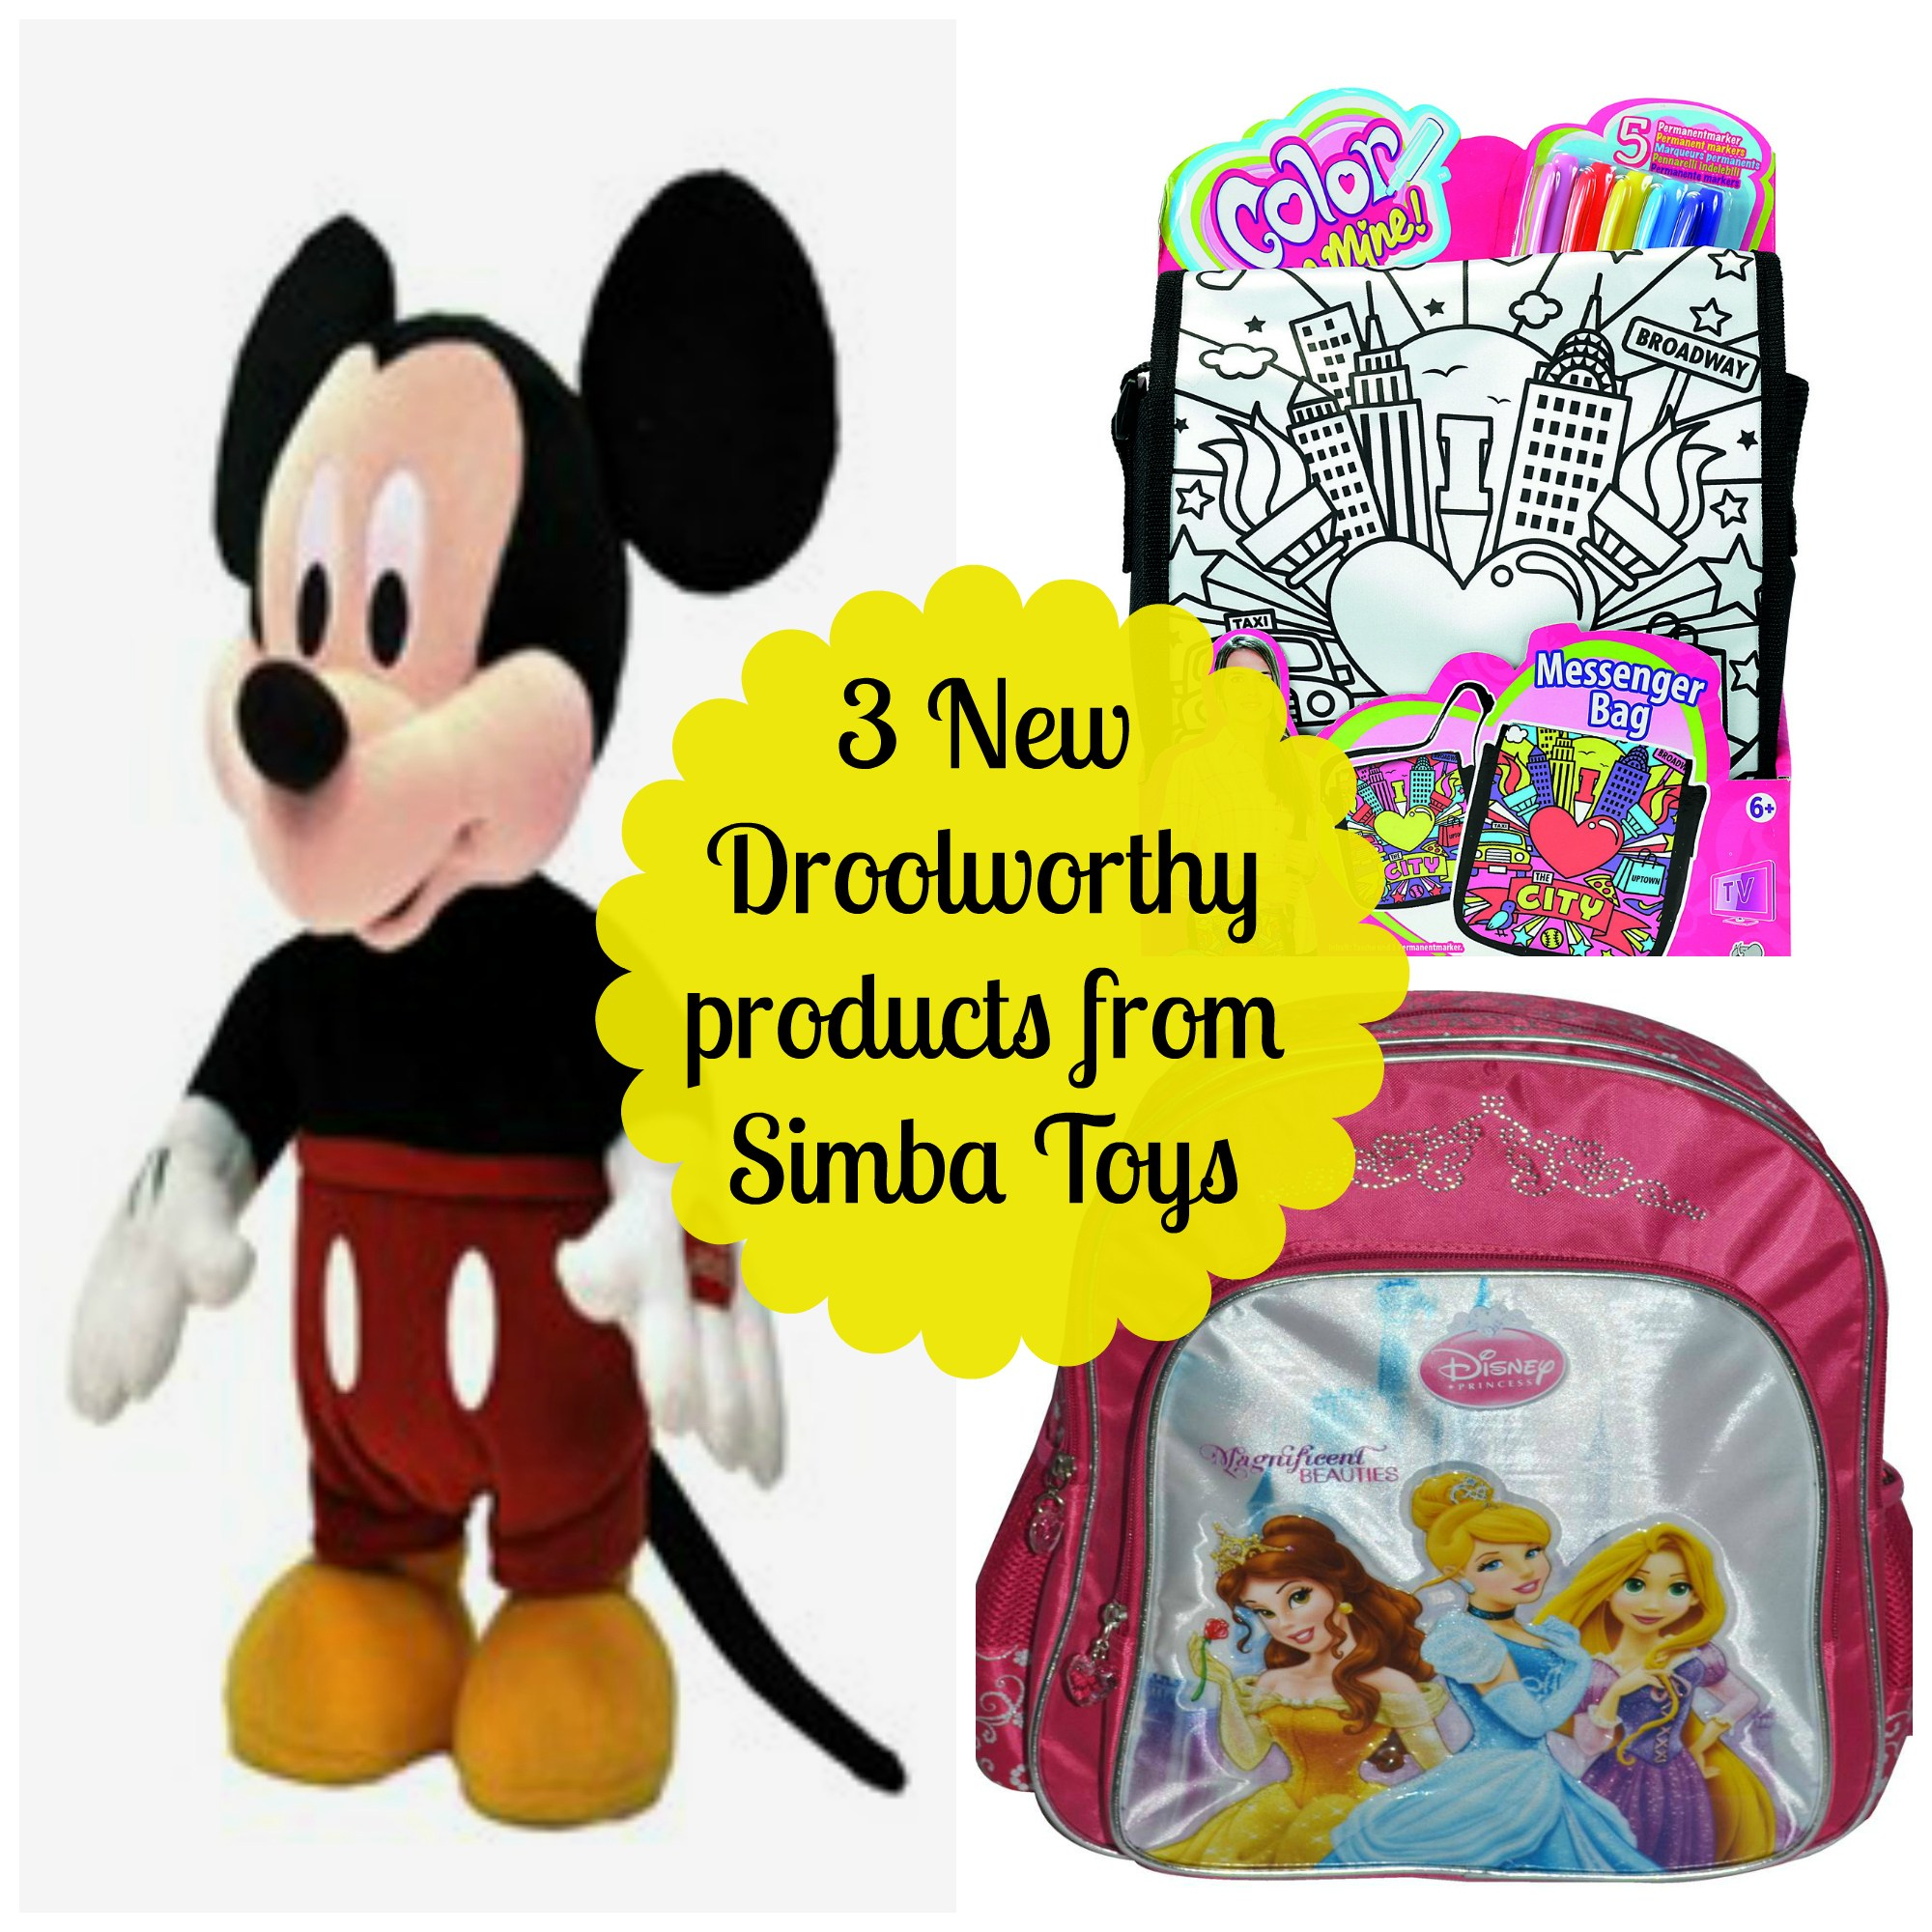 3 new droolworthy products from Simba Toys